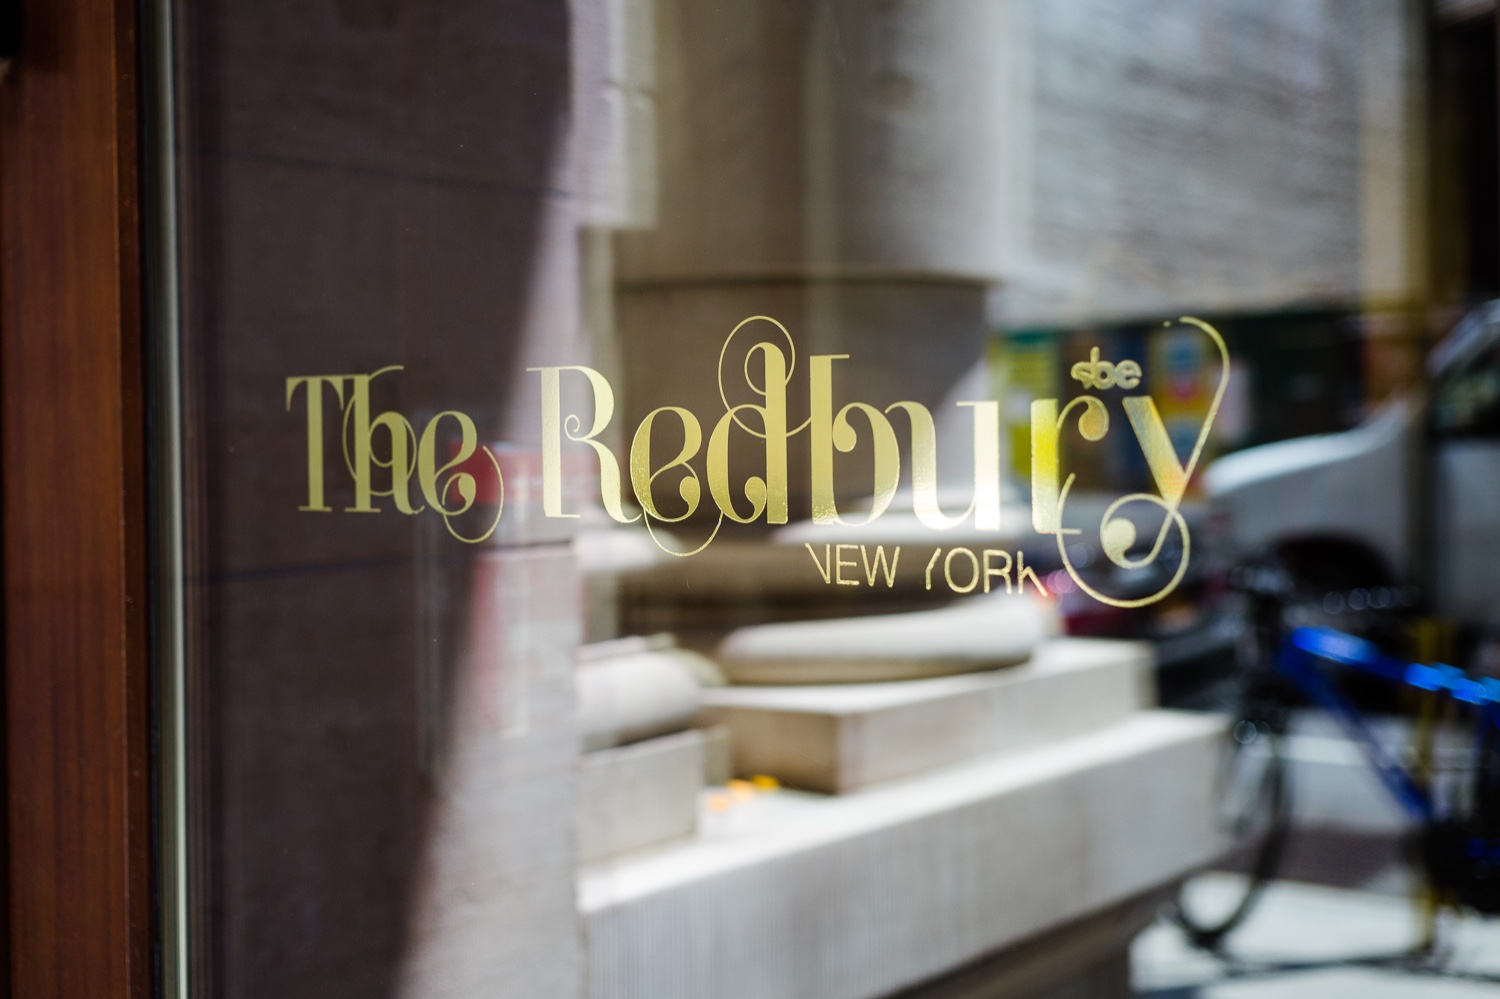 The Redbury Hotel, The Redbury Hotel Wedding, The Redbury Hotel Wedding Photos, Manhattan Wedding, Manhattan Wedding Photographer, Best NYC Wedding Photographer, New York City Wedding,